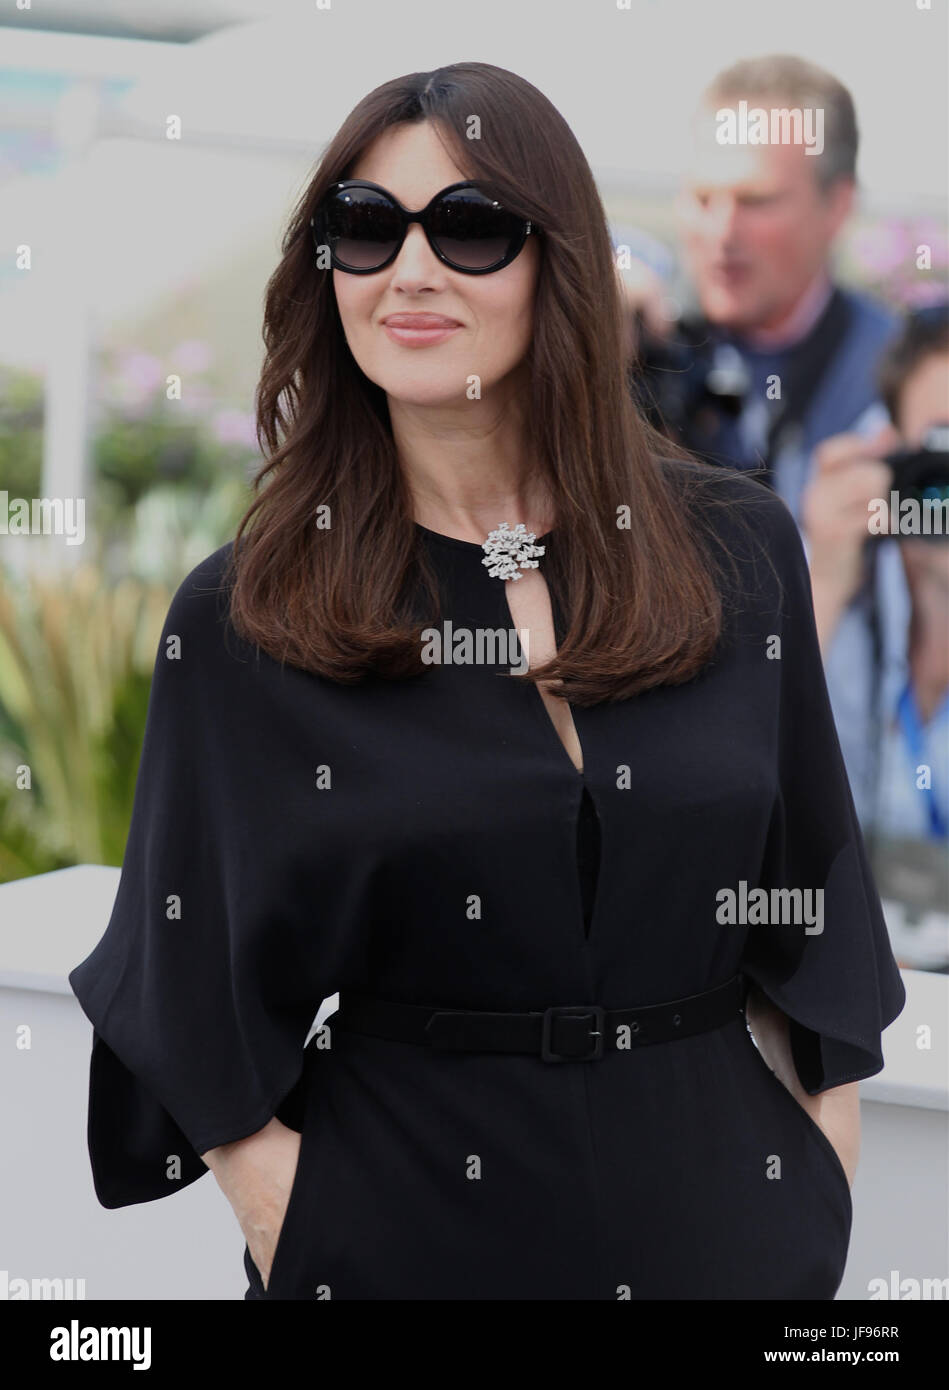 Monica Bellucci attends a photocall for her duty as Mistress of Ceremonies photocall during the 70th annual Cannes Stock Photo